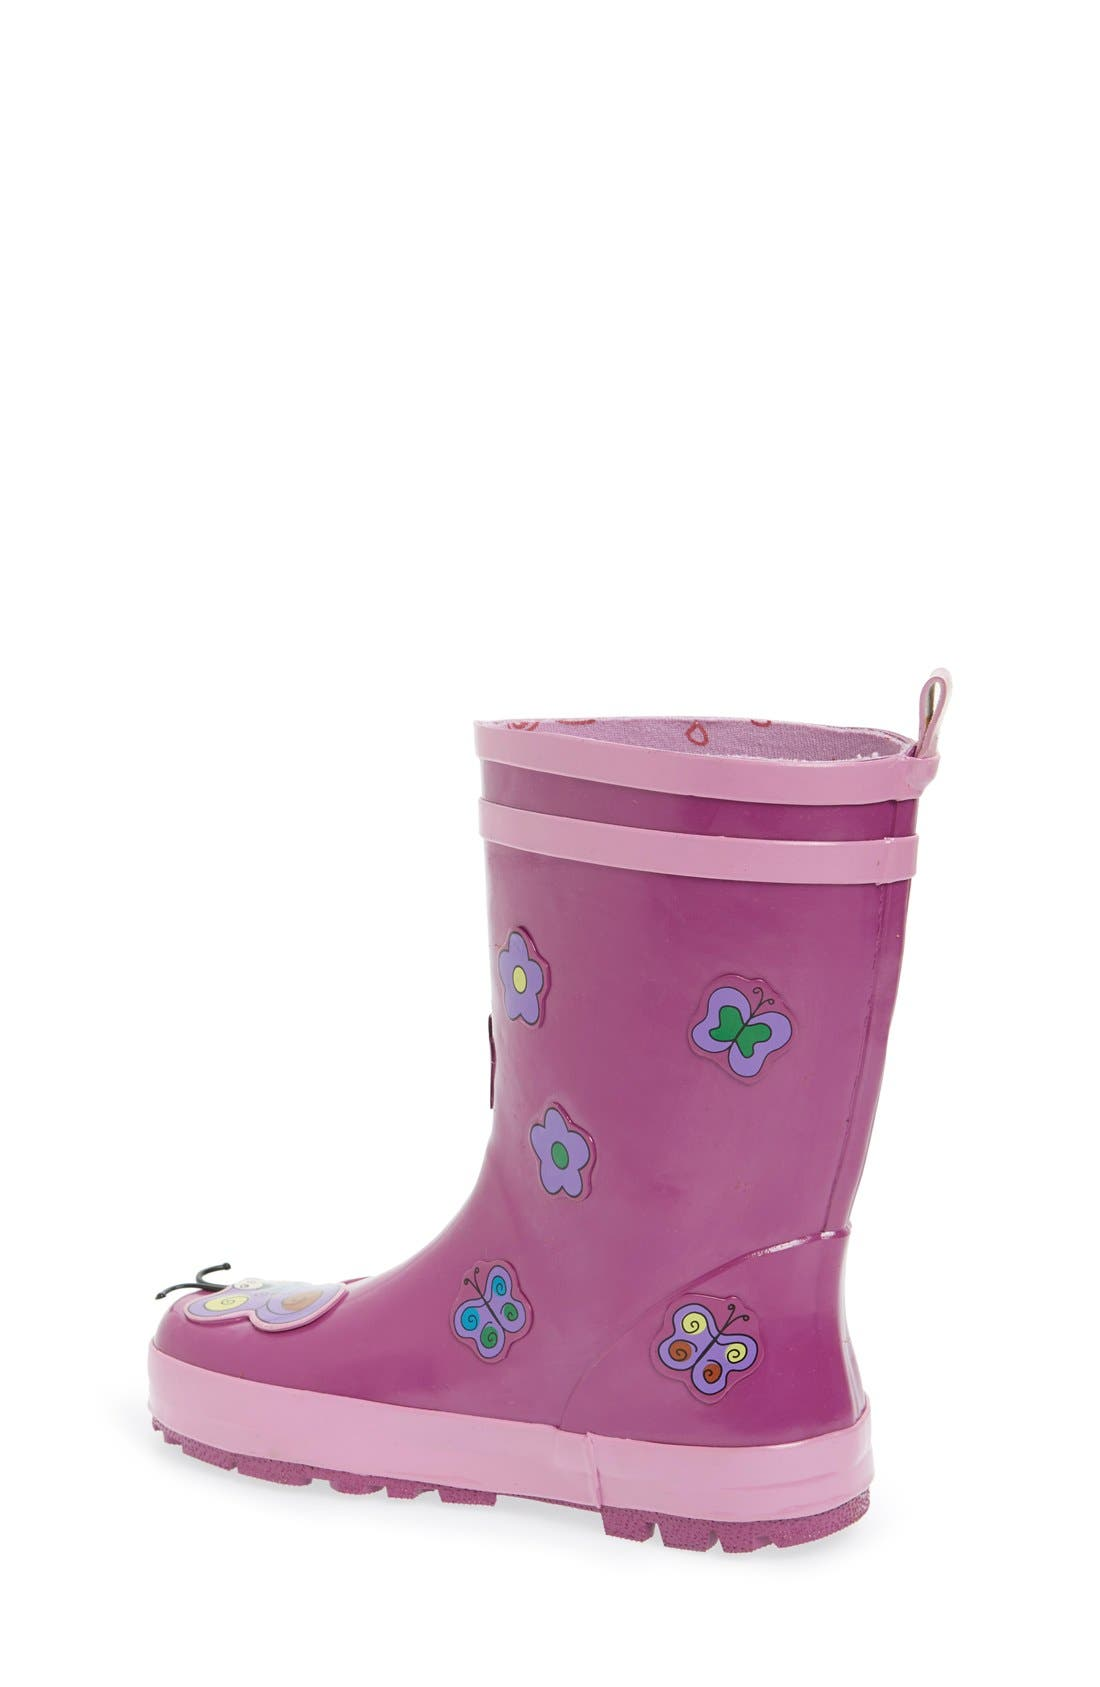 'Butterfly' Waterproof Rain Boot,                             Alternate thumbnail 2, color,                             Purple